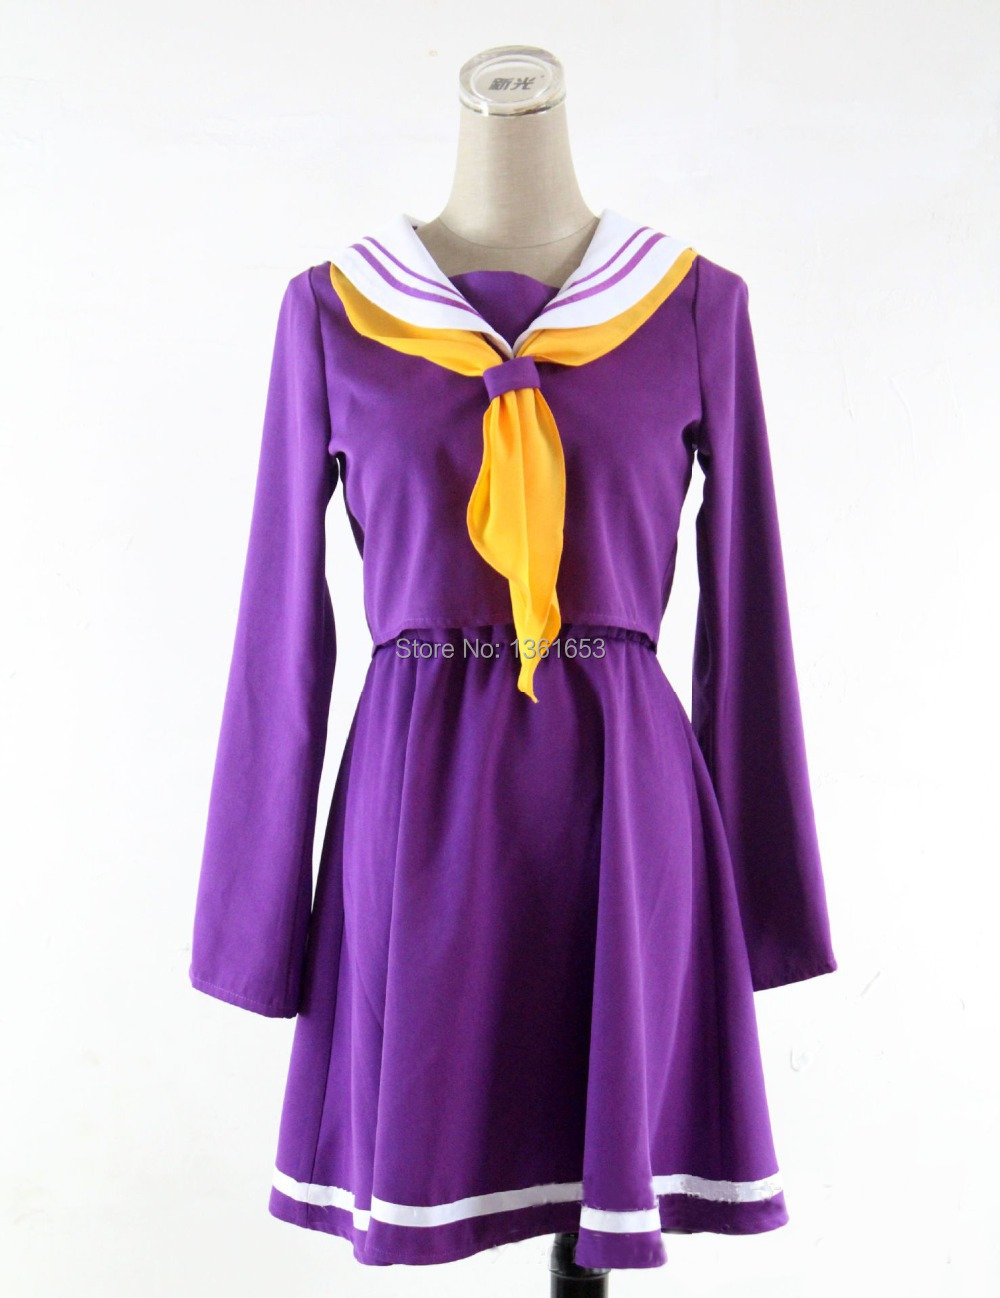 NO GAME NO LIFE Anime cosplay costume dress hallowean cosplay costume for women